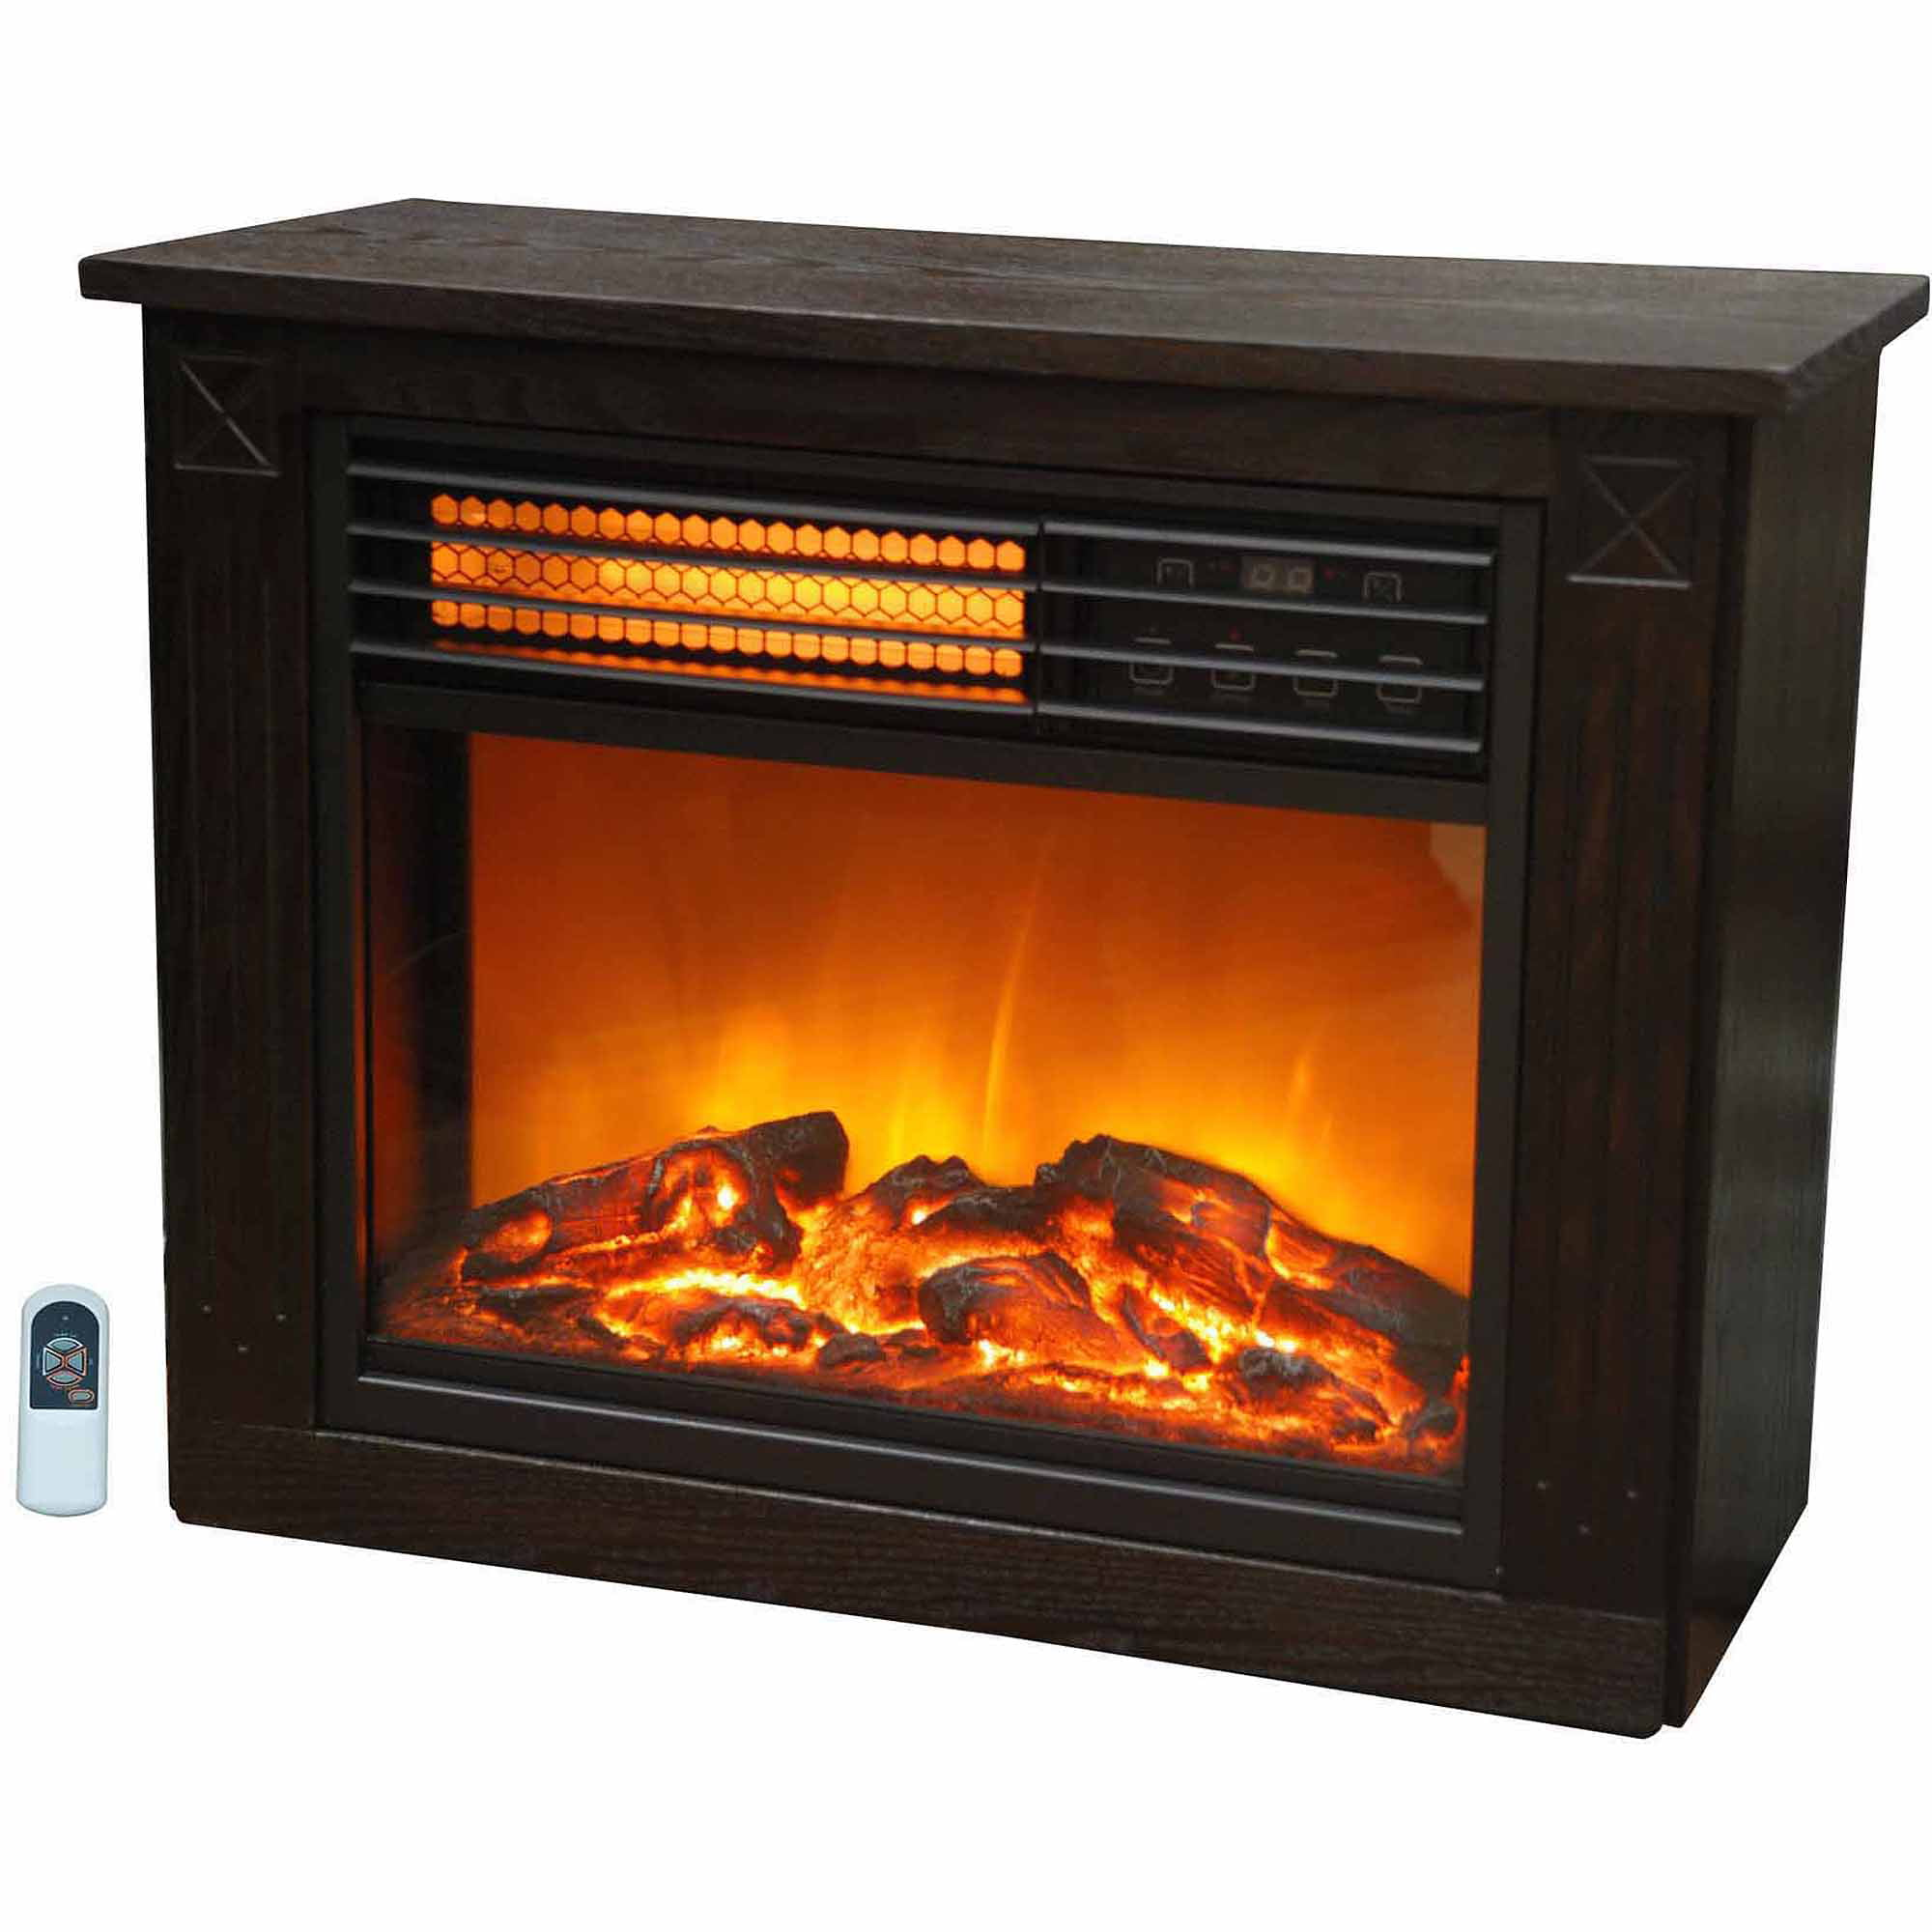 Lifezone Compact Infrared Fireplace With Heater Function, SGH 2001FRP13